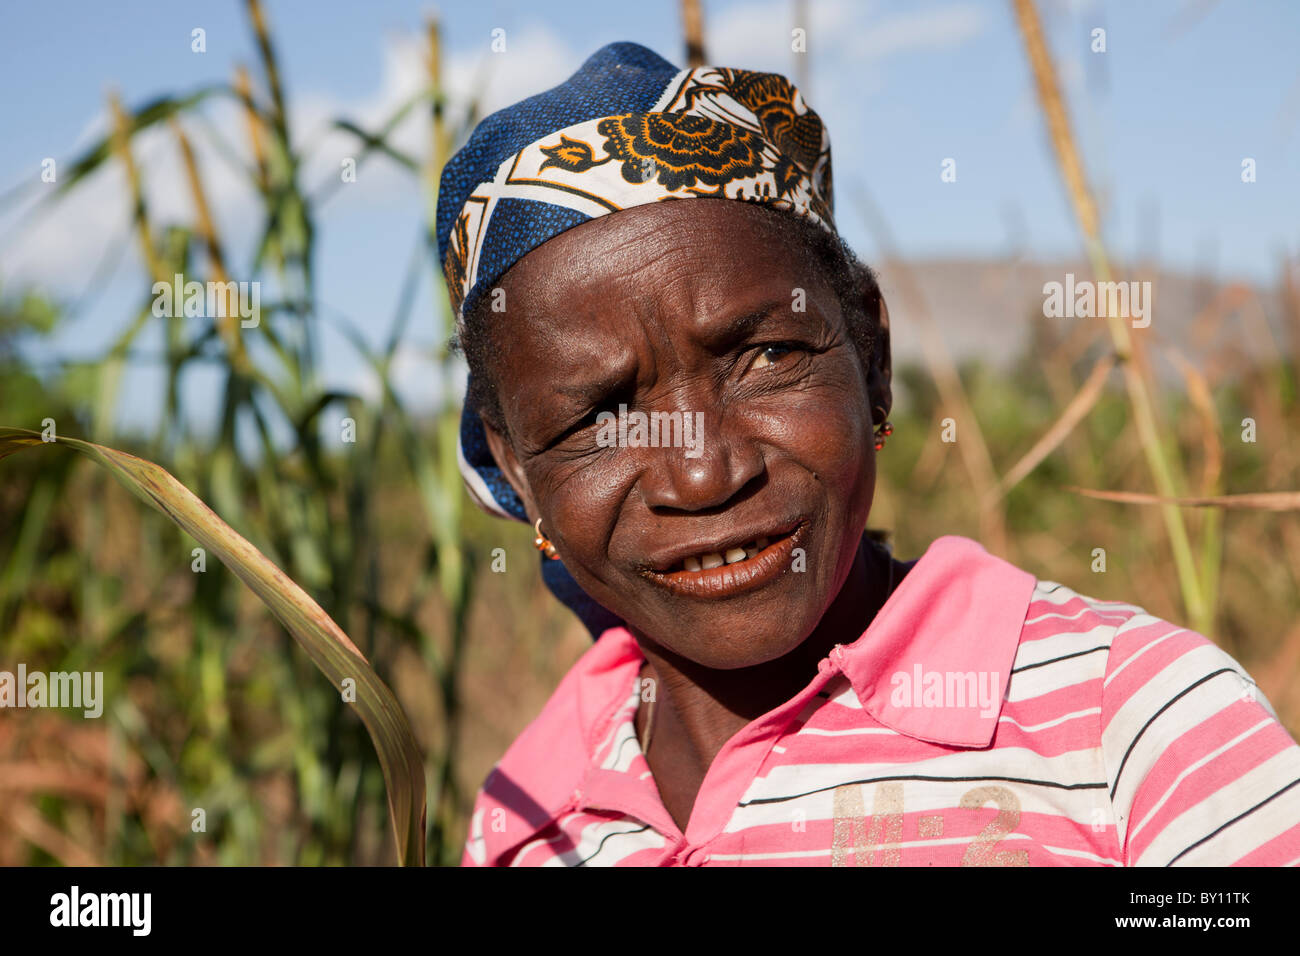 MECEBURI NEAR NAMPULA, MOZAMBIQUE, May 2010: Adrina Veleke, a farmer and single mother, with her millet crop beside - Stock Image